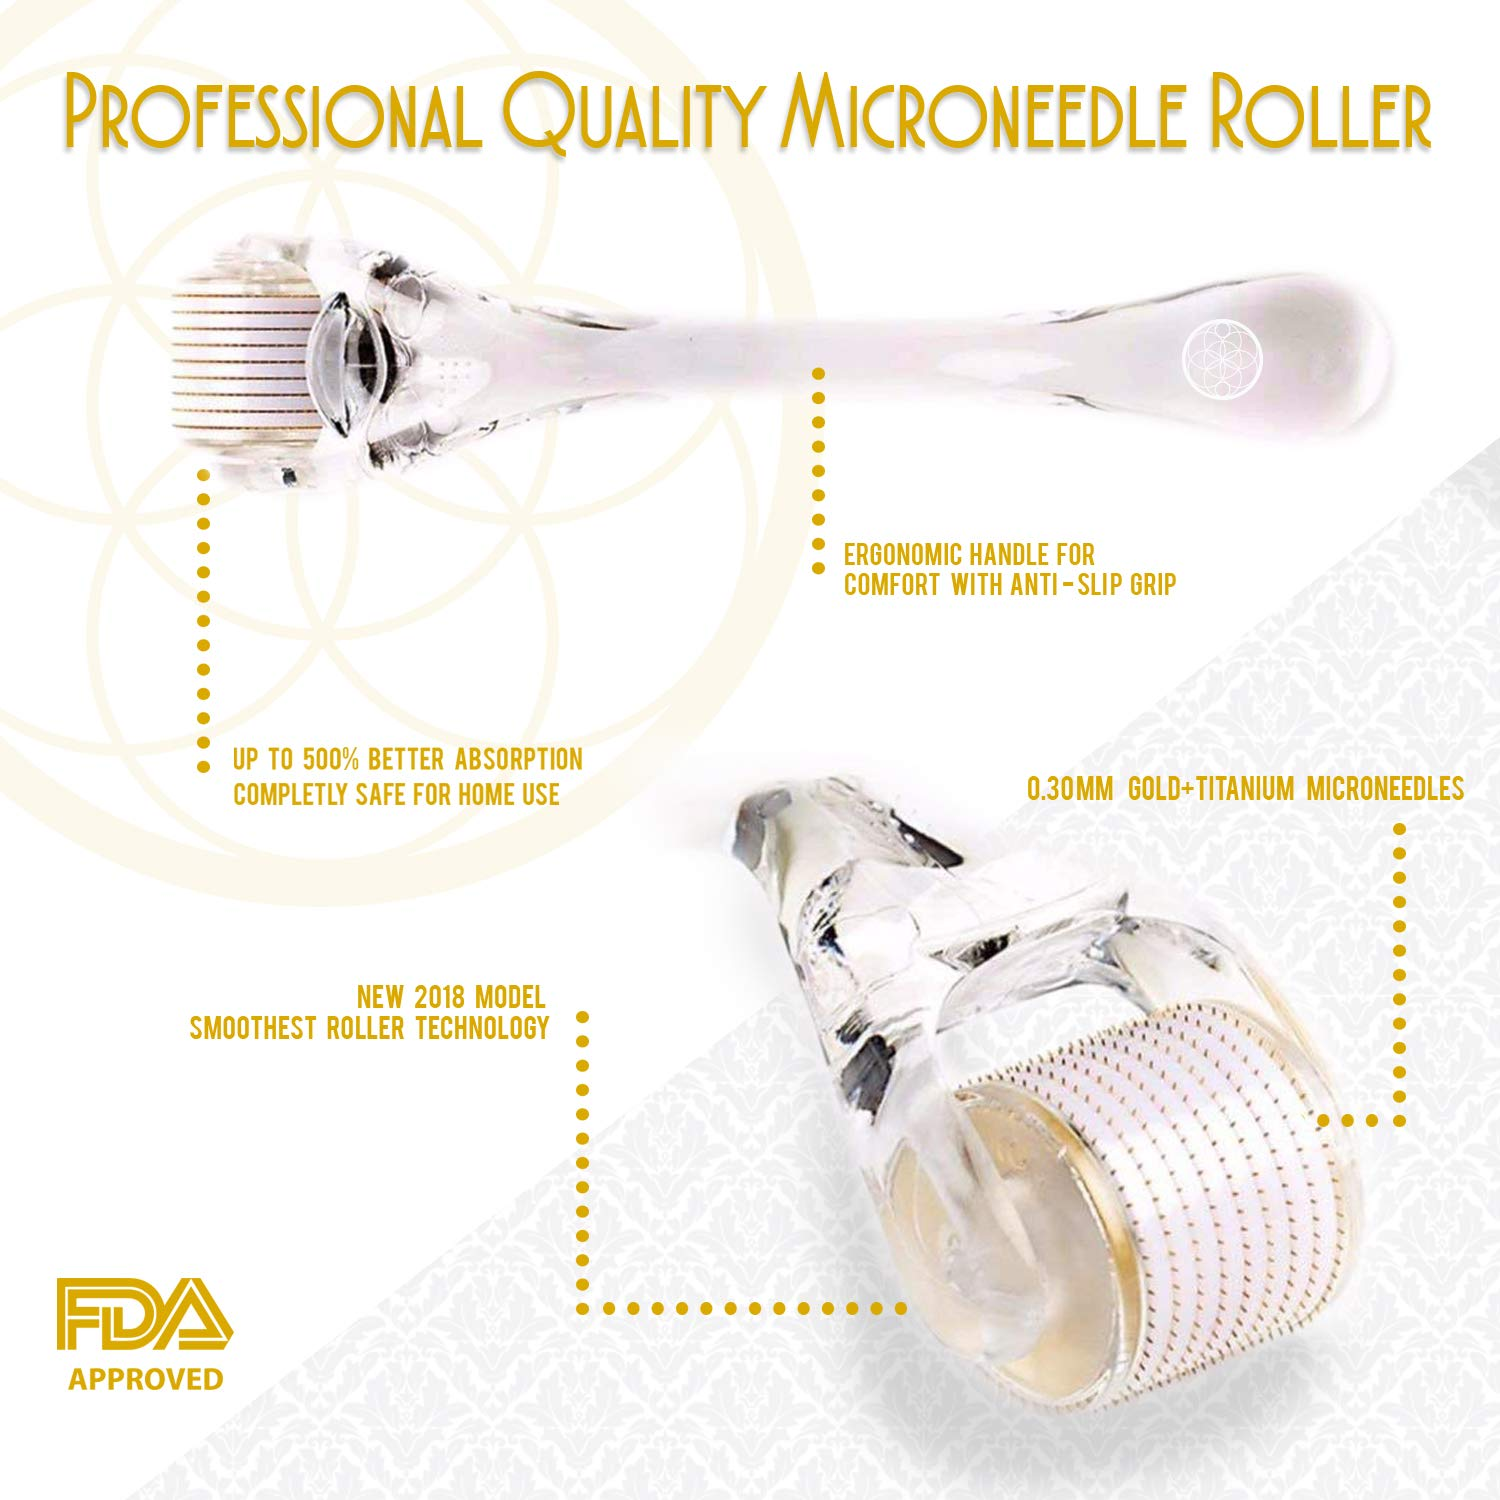 Opulent Pure Derma Roller Kit - Microneedle Roller for Face - 540 Gold Titanium Micro Needle 0.30mm - Includes Hard Case and Instructional book by Opulent Pure (Image #2)